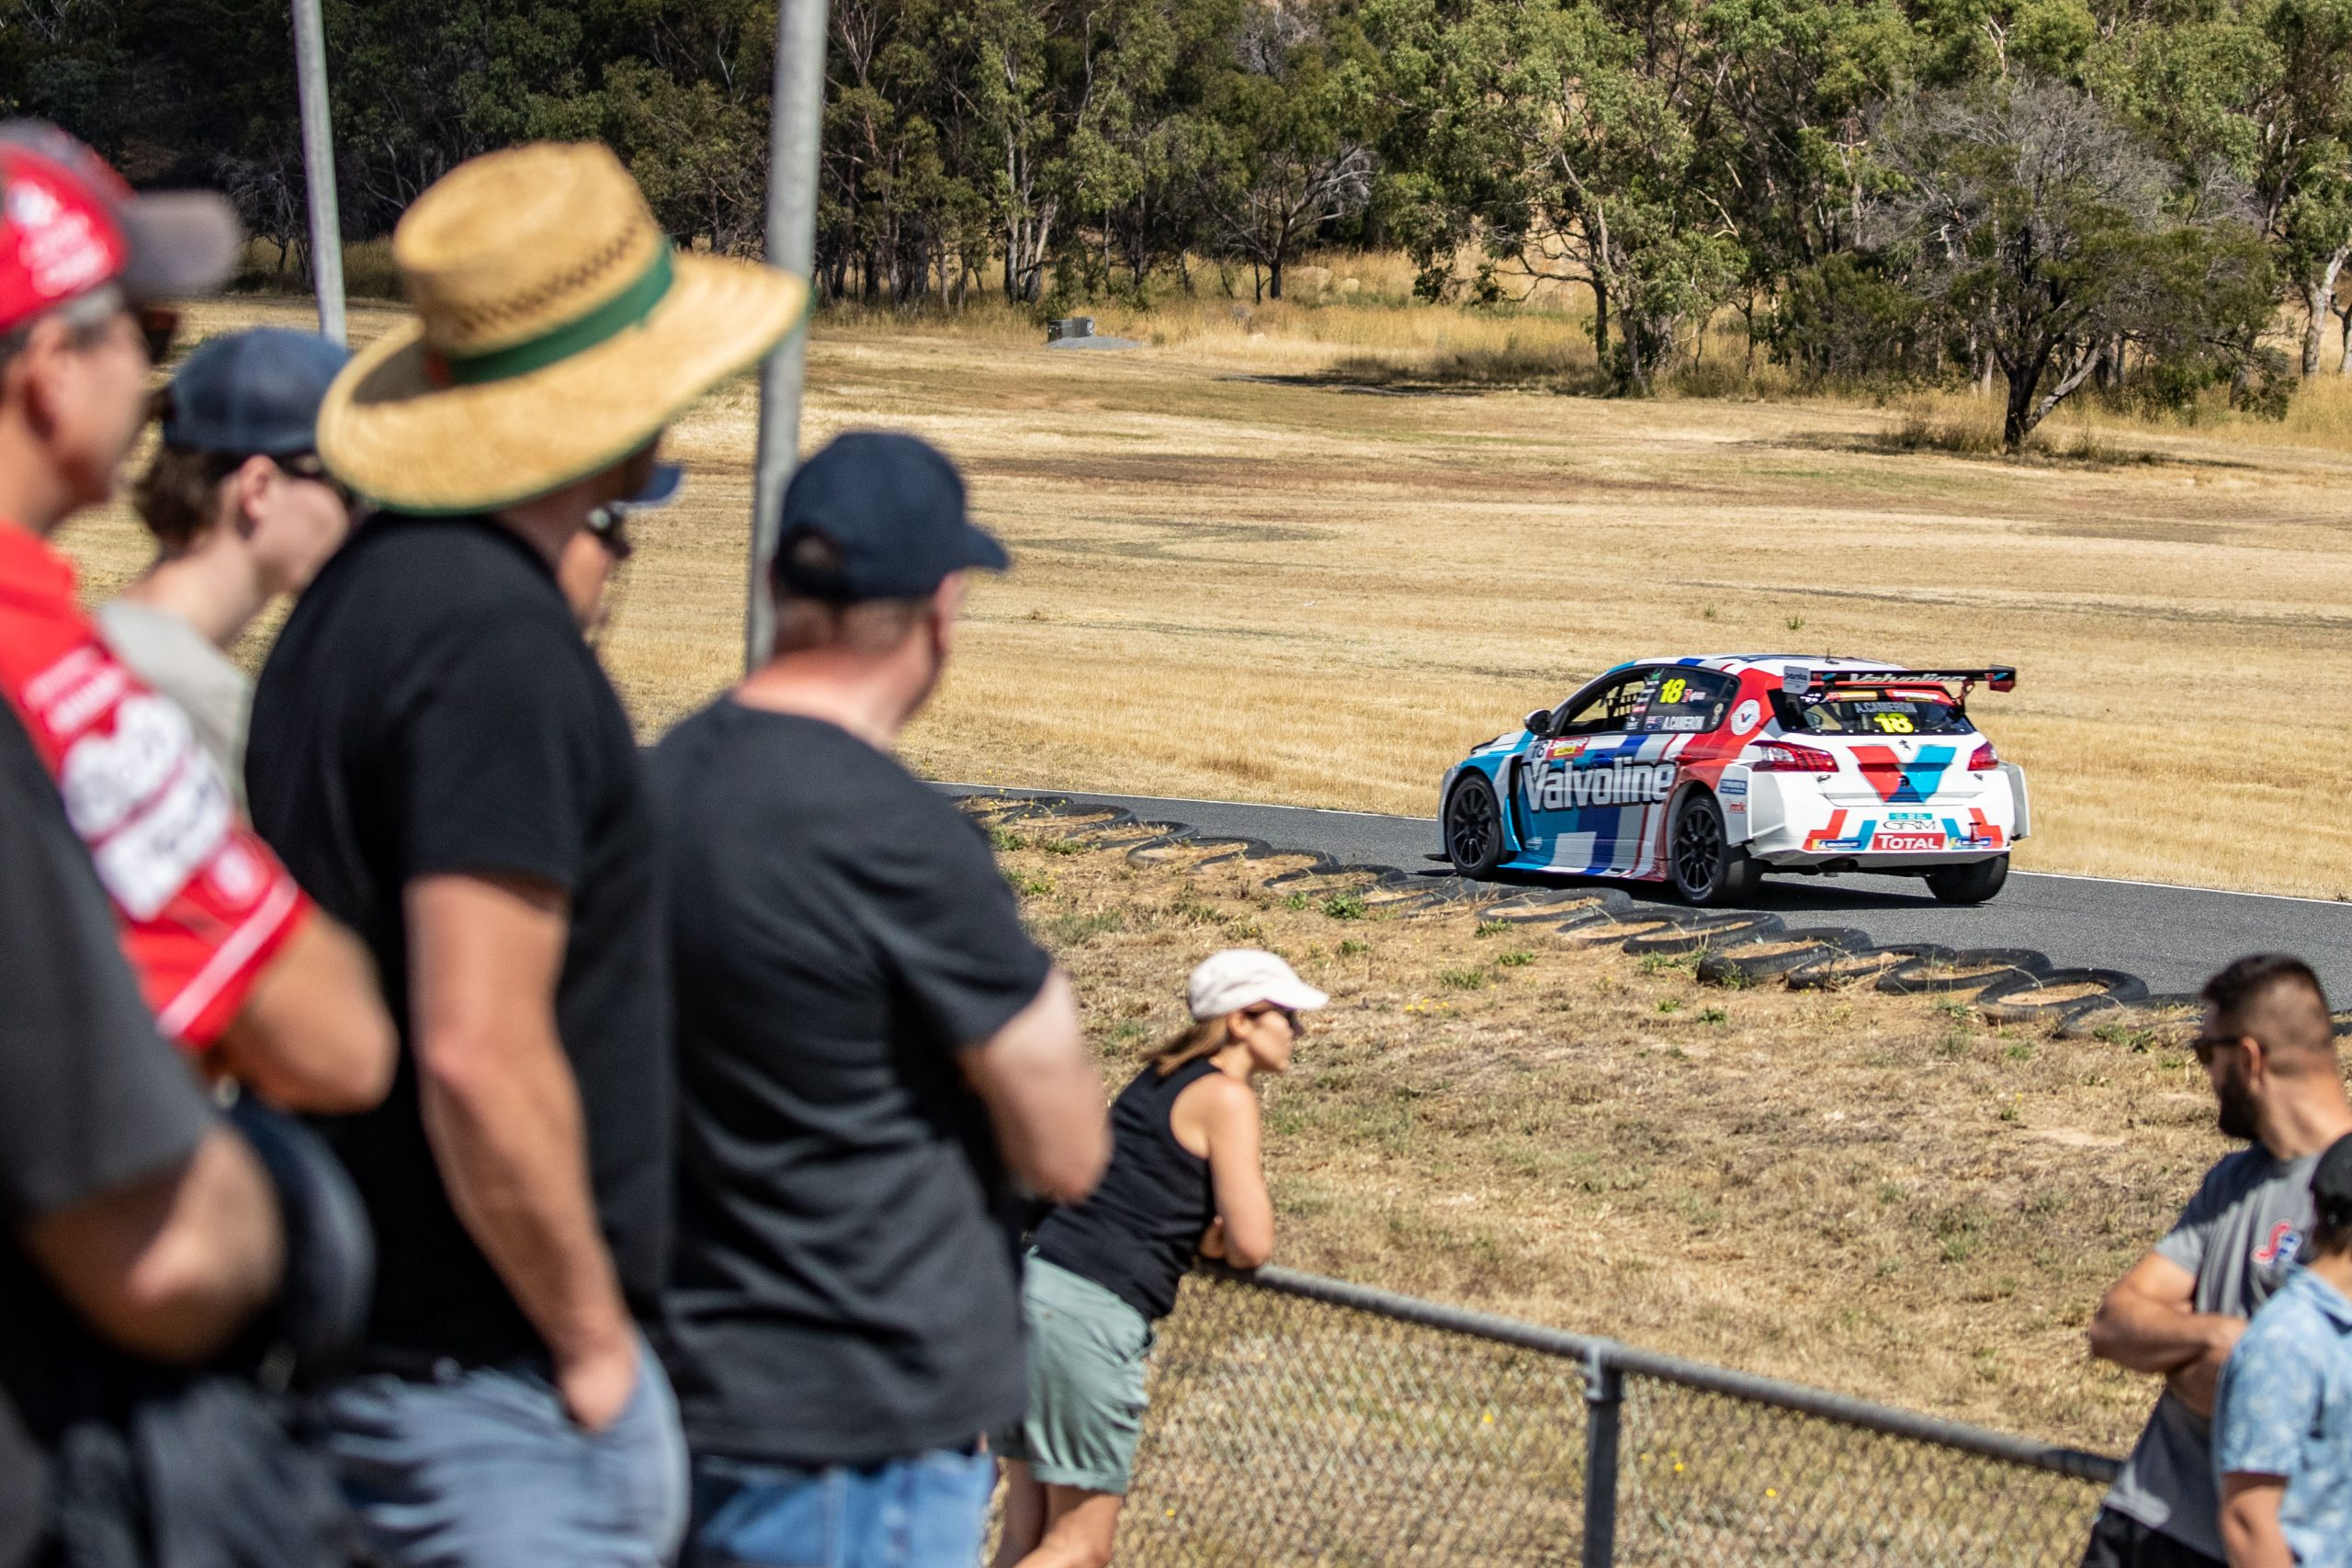 AARON CAMERON CLAIMS TWO SUNDAY WINS AT BASKERVILLE TCR INVITAIONAL